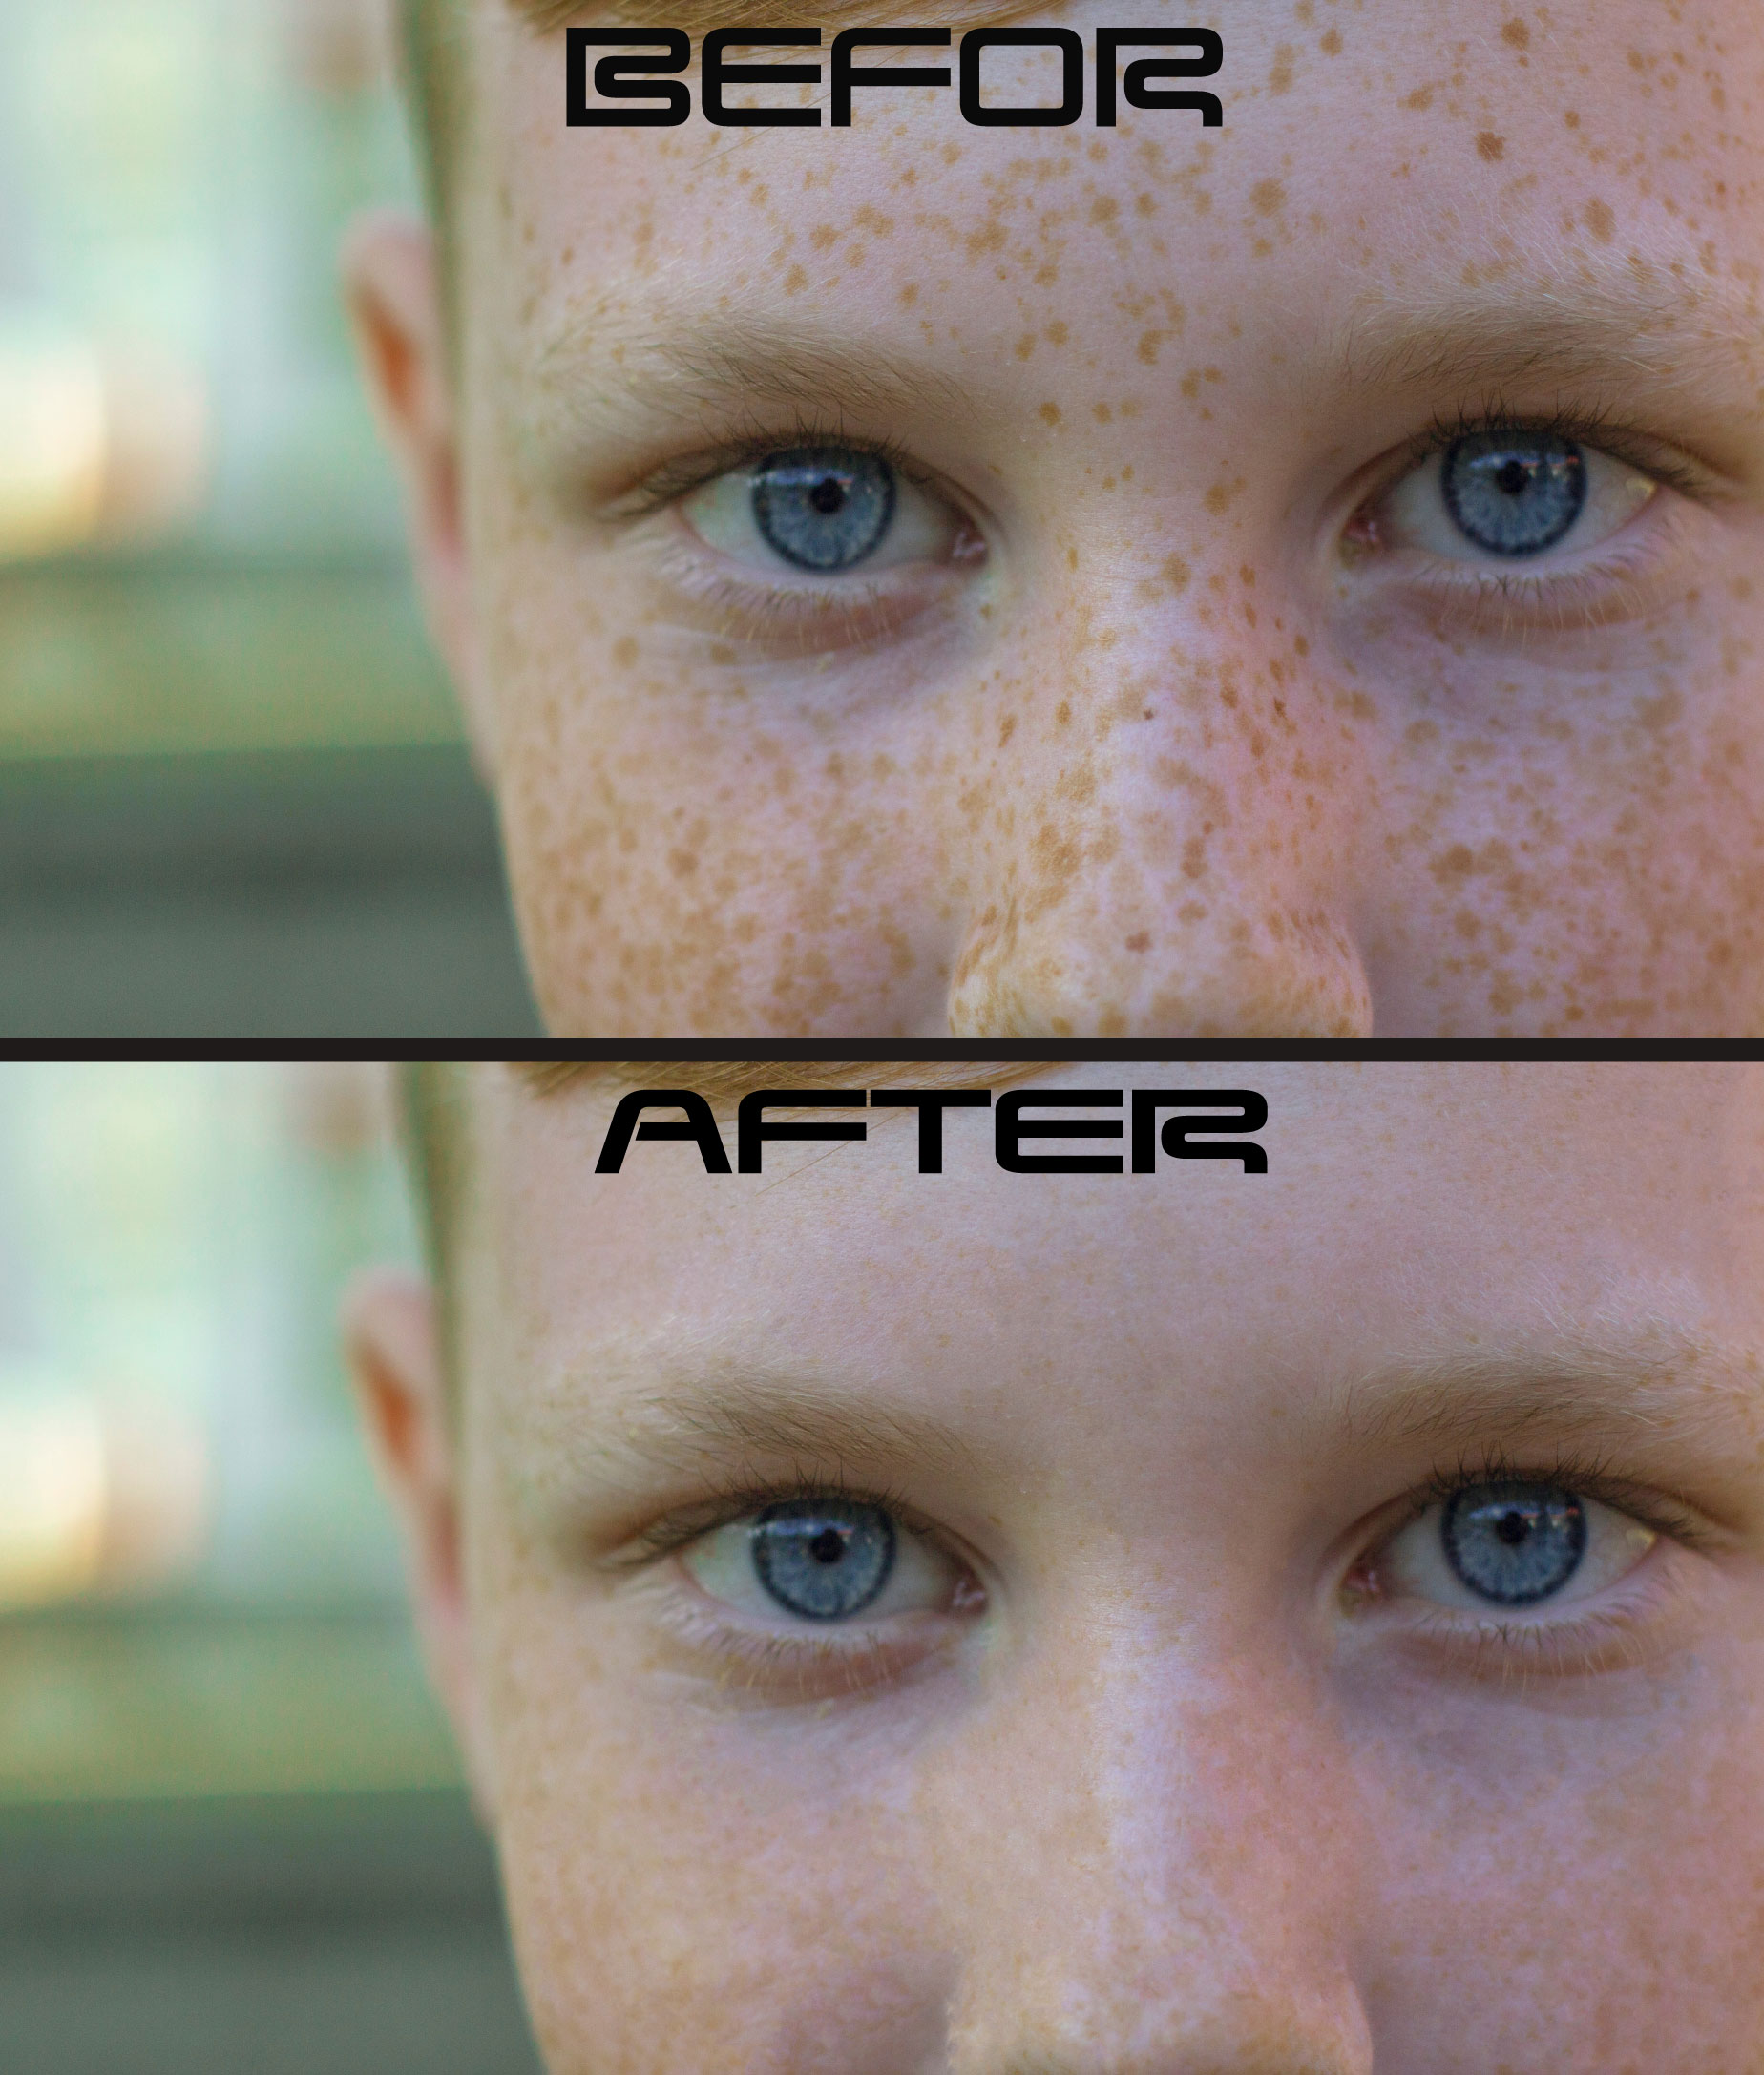 Natural looking portrait retouching and photo editing service